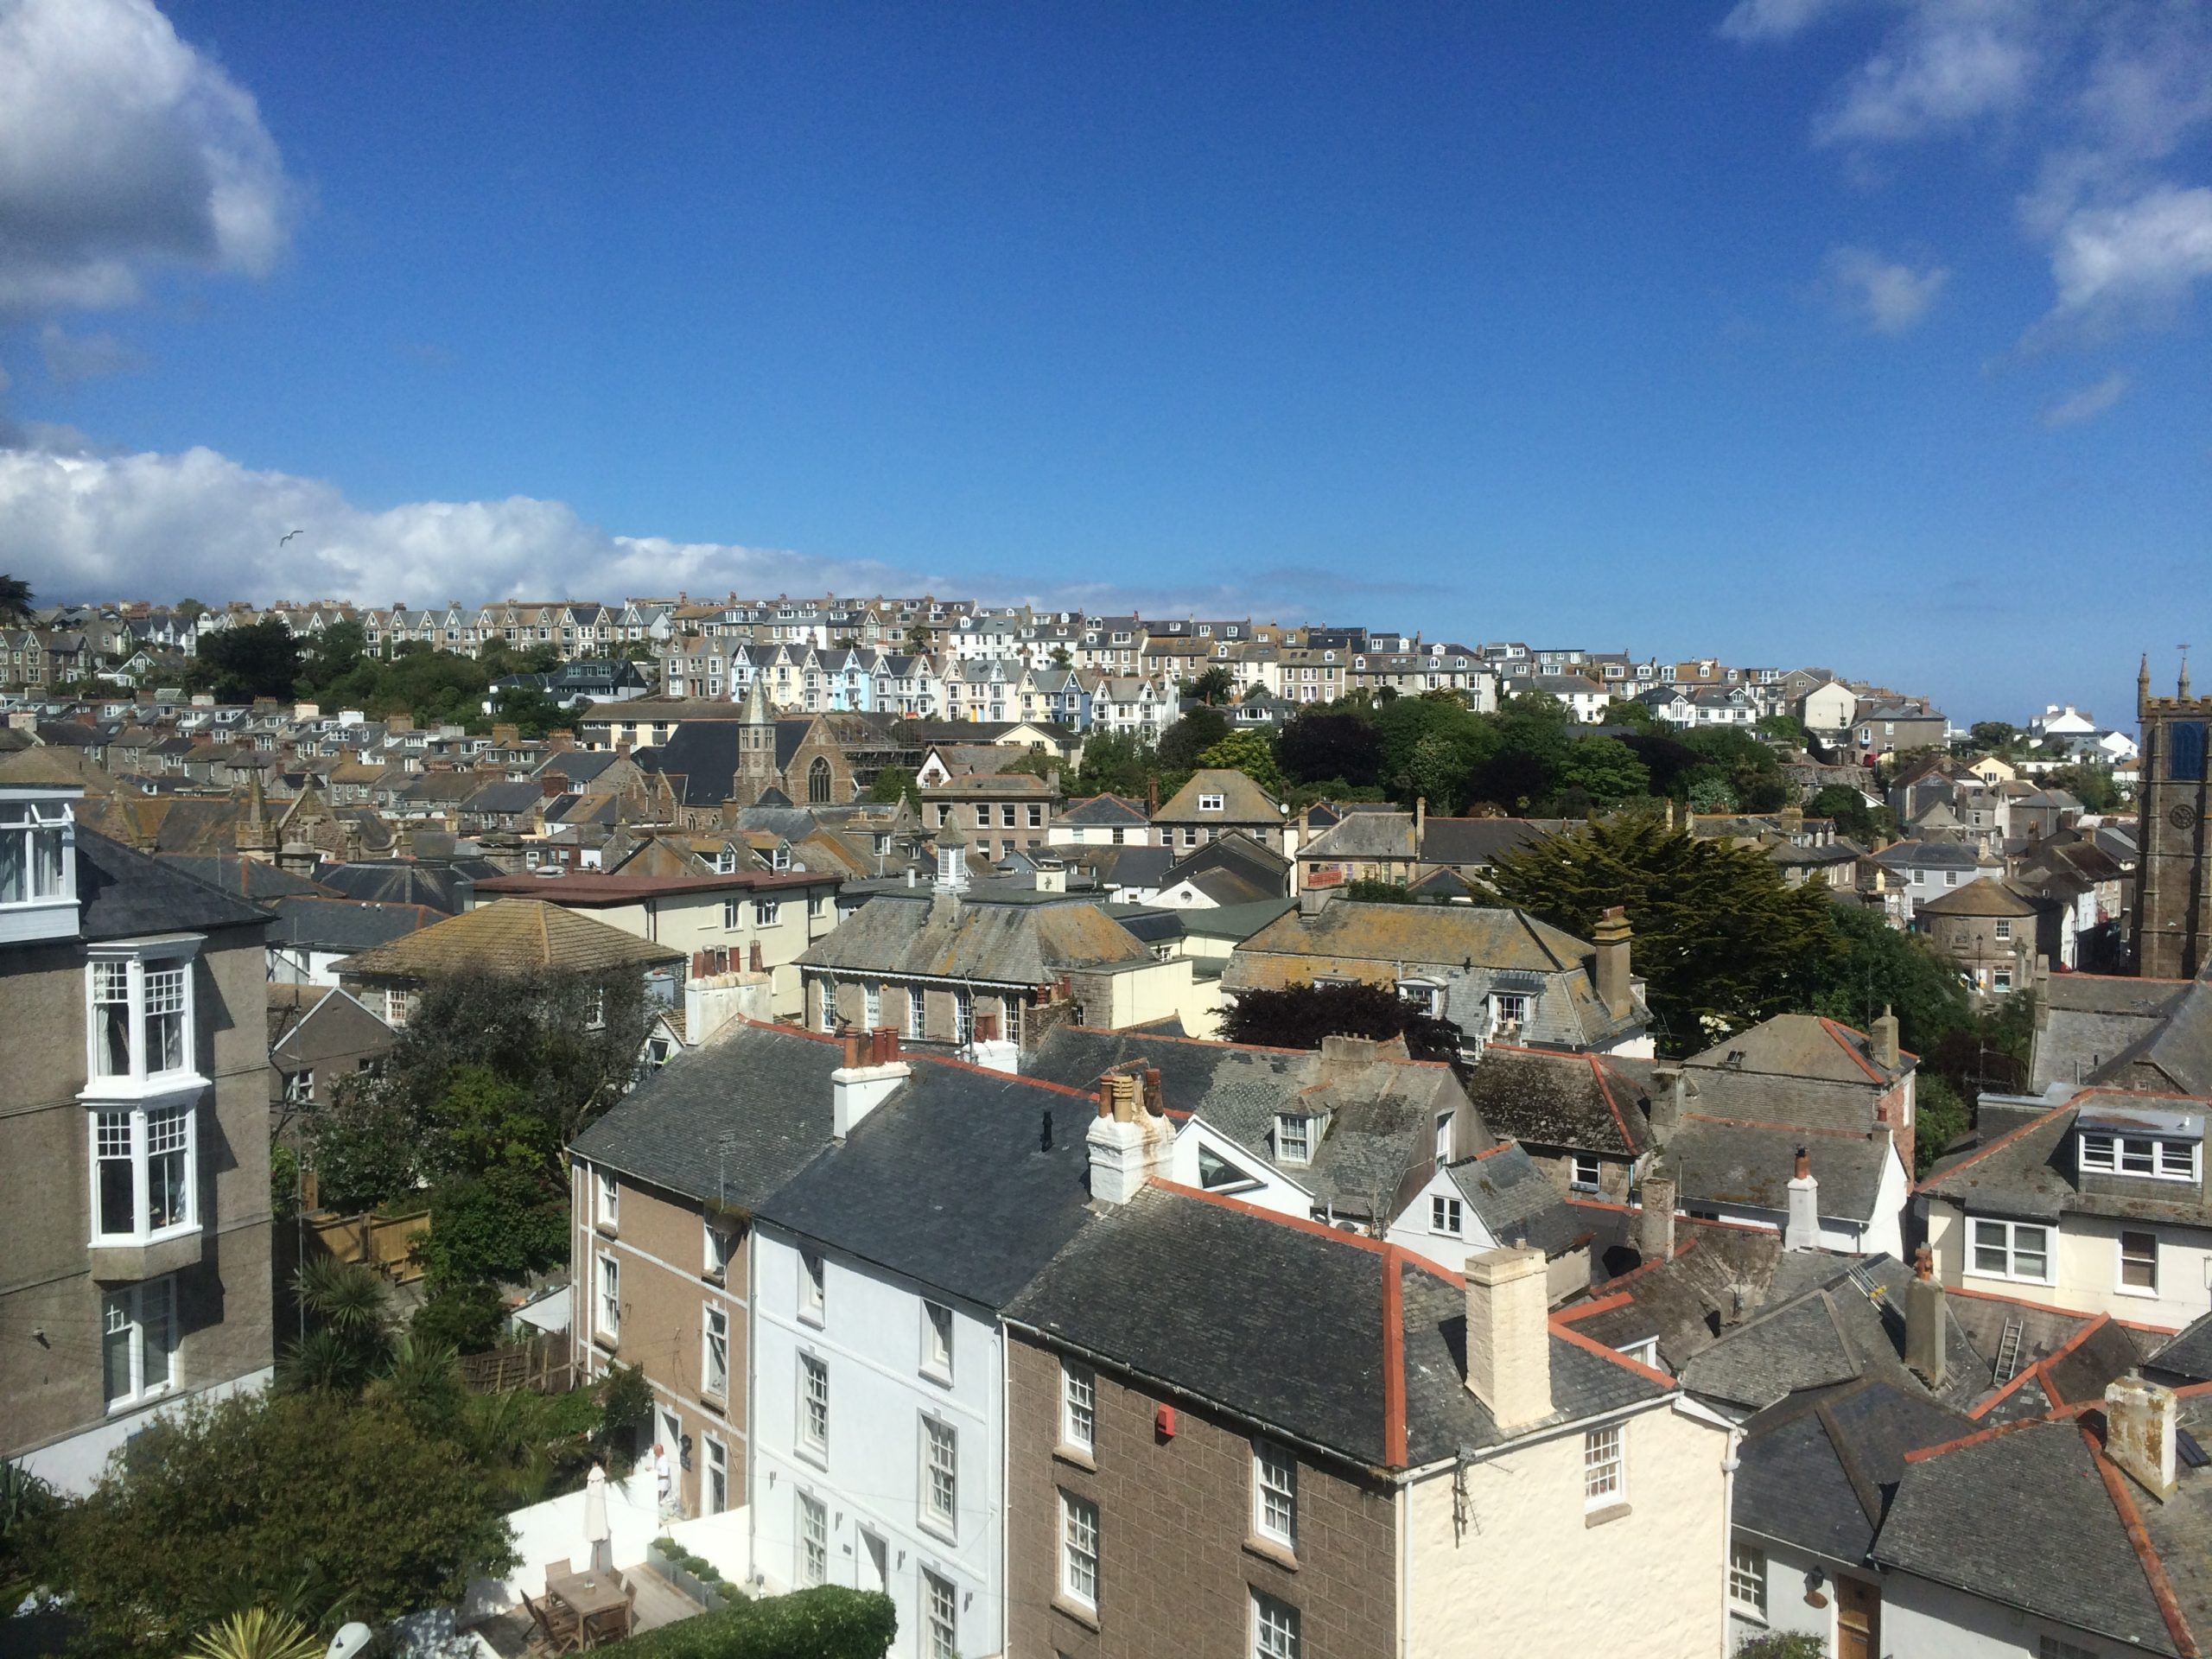 Overlooking the Rooftops in St Ives